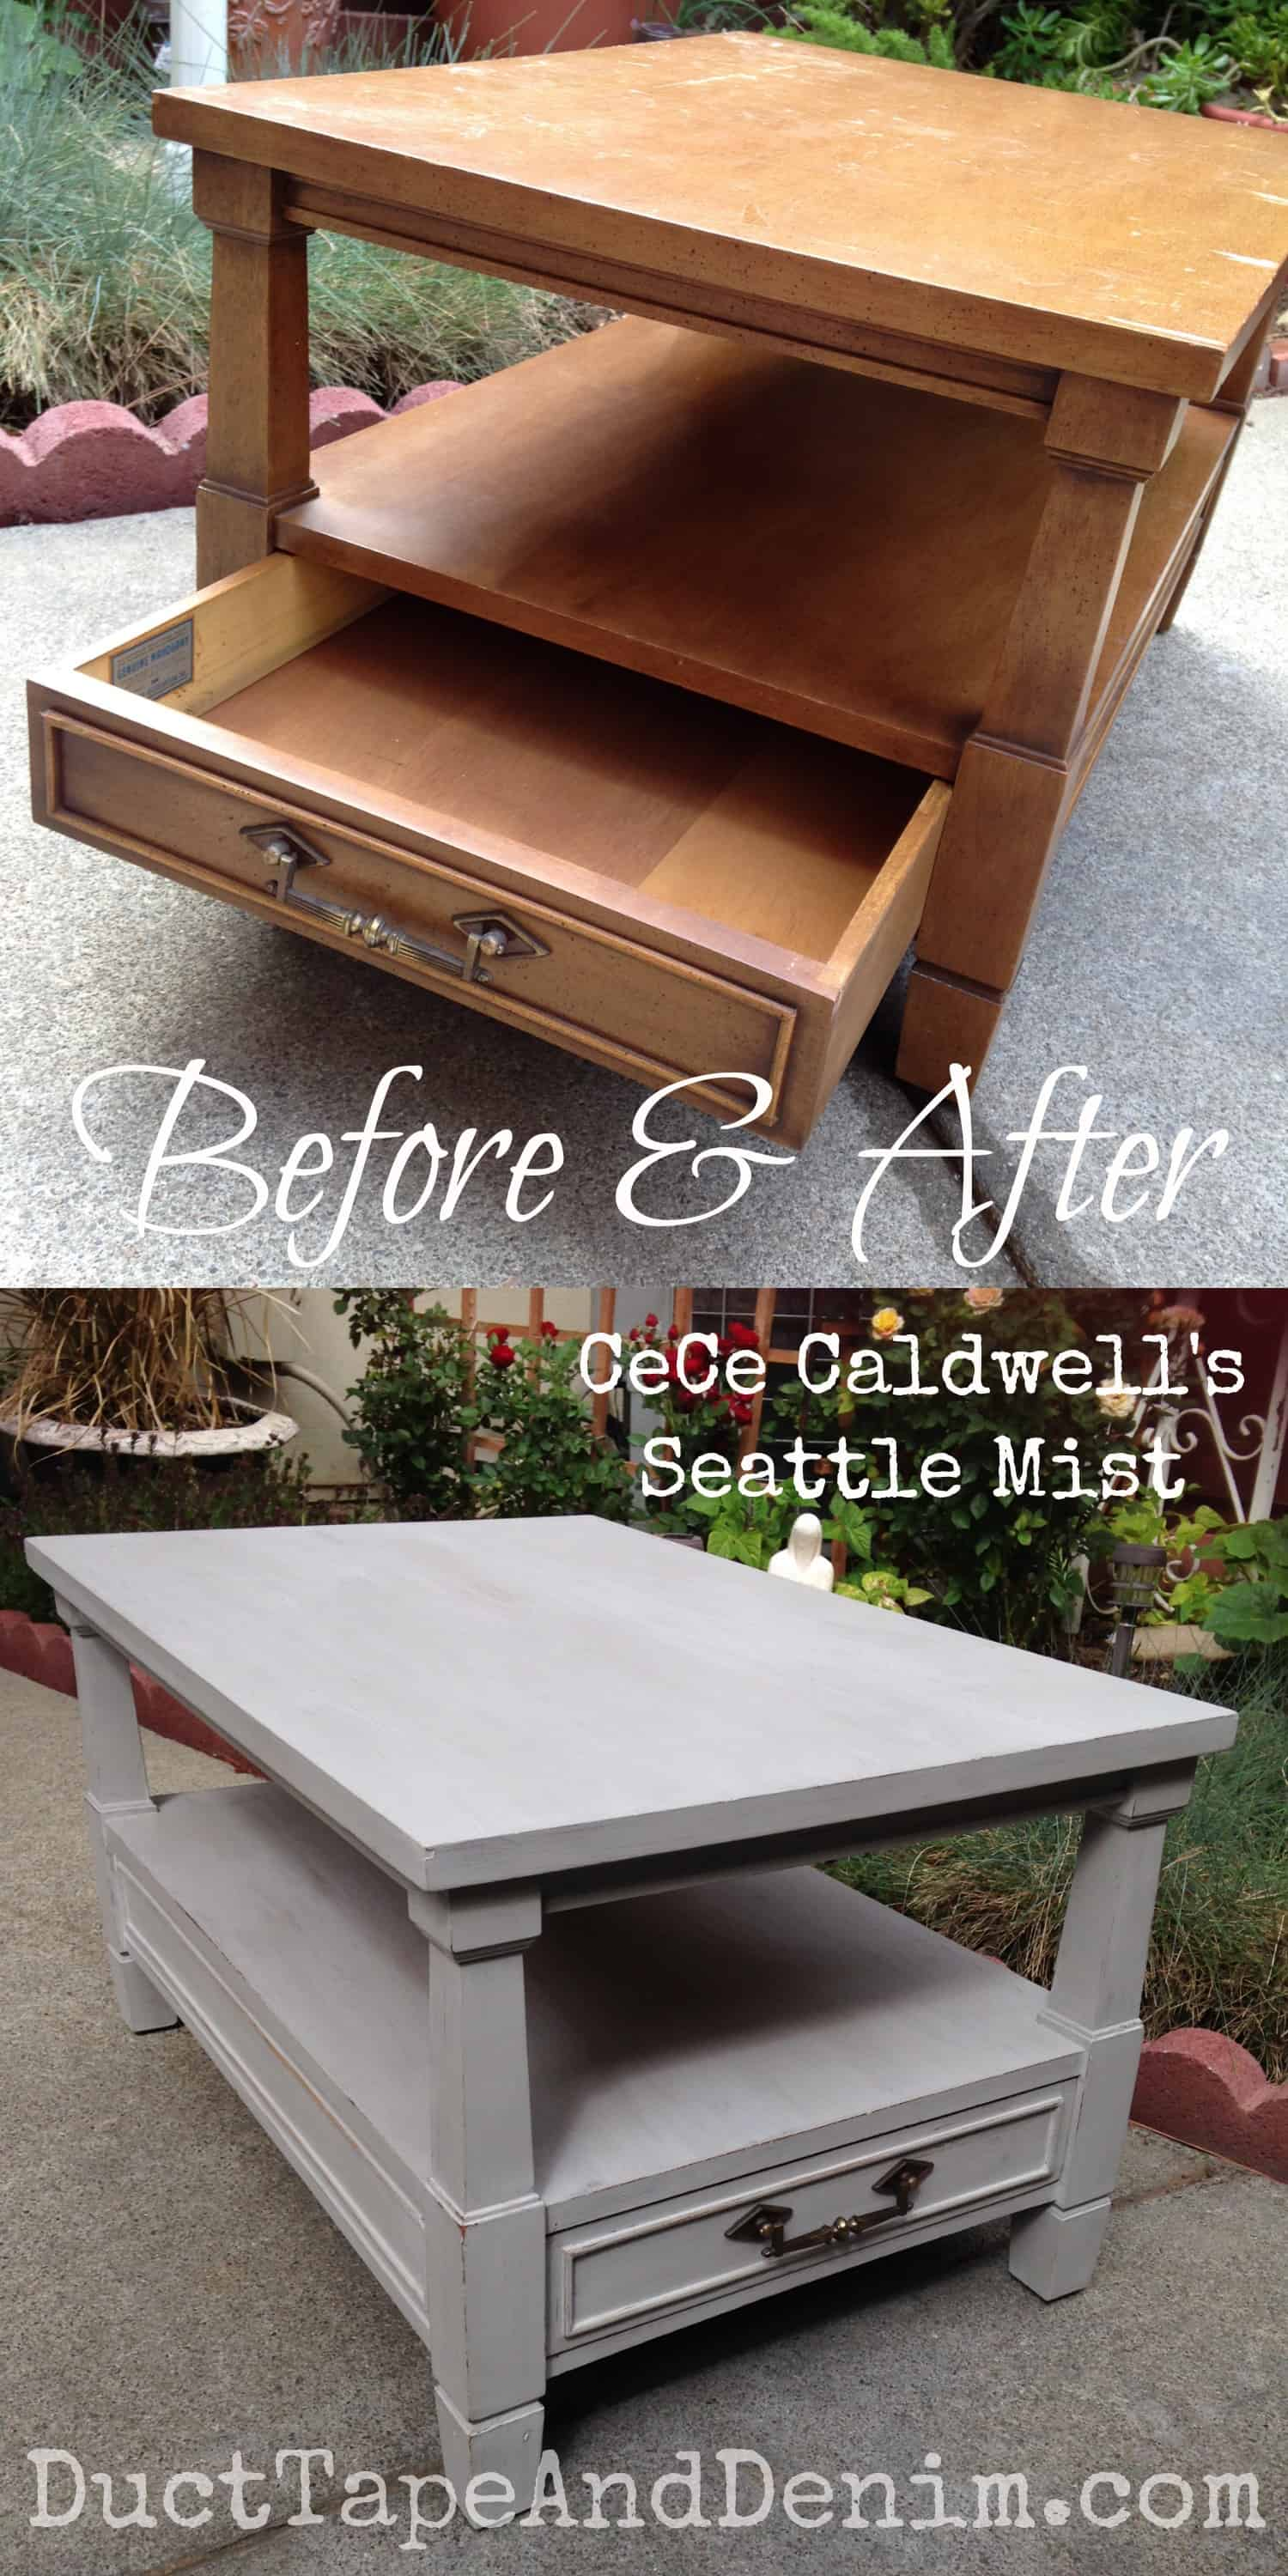 Before and after vintage end table painted with CeCe Caldwell natural chalk and clay paint in Seattle Mist | DuctTapeAndDenim.com